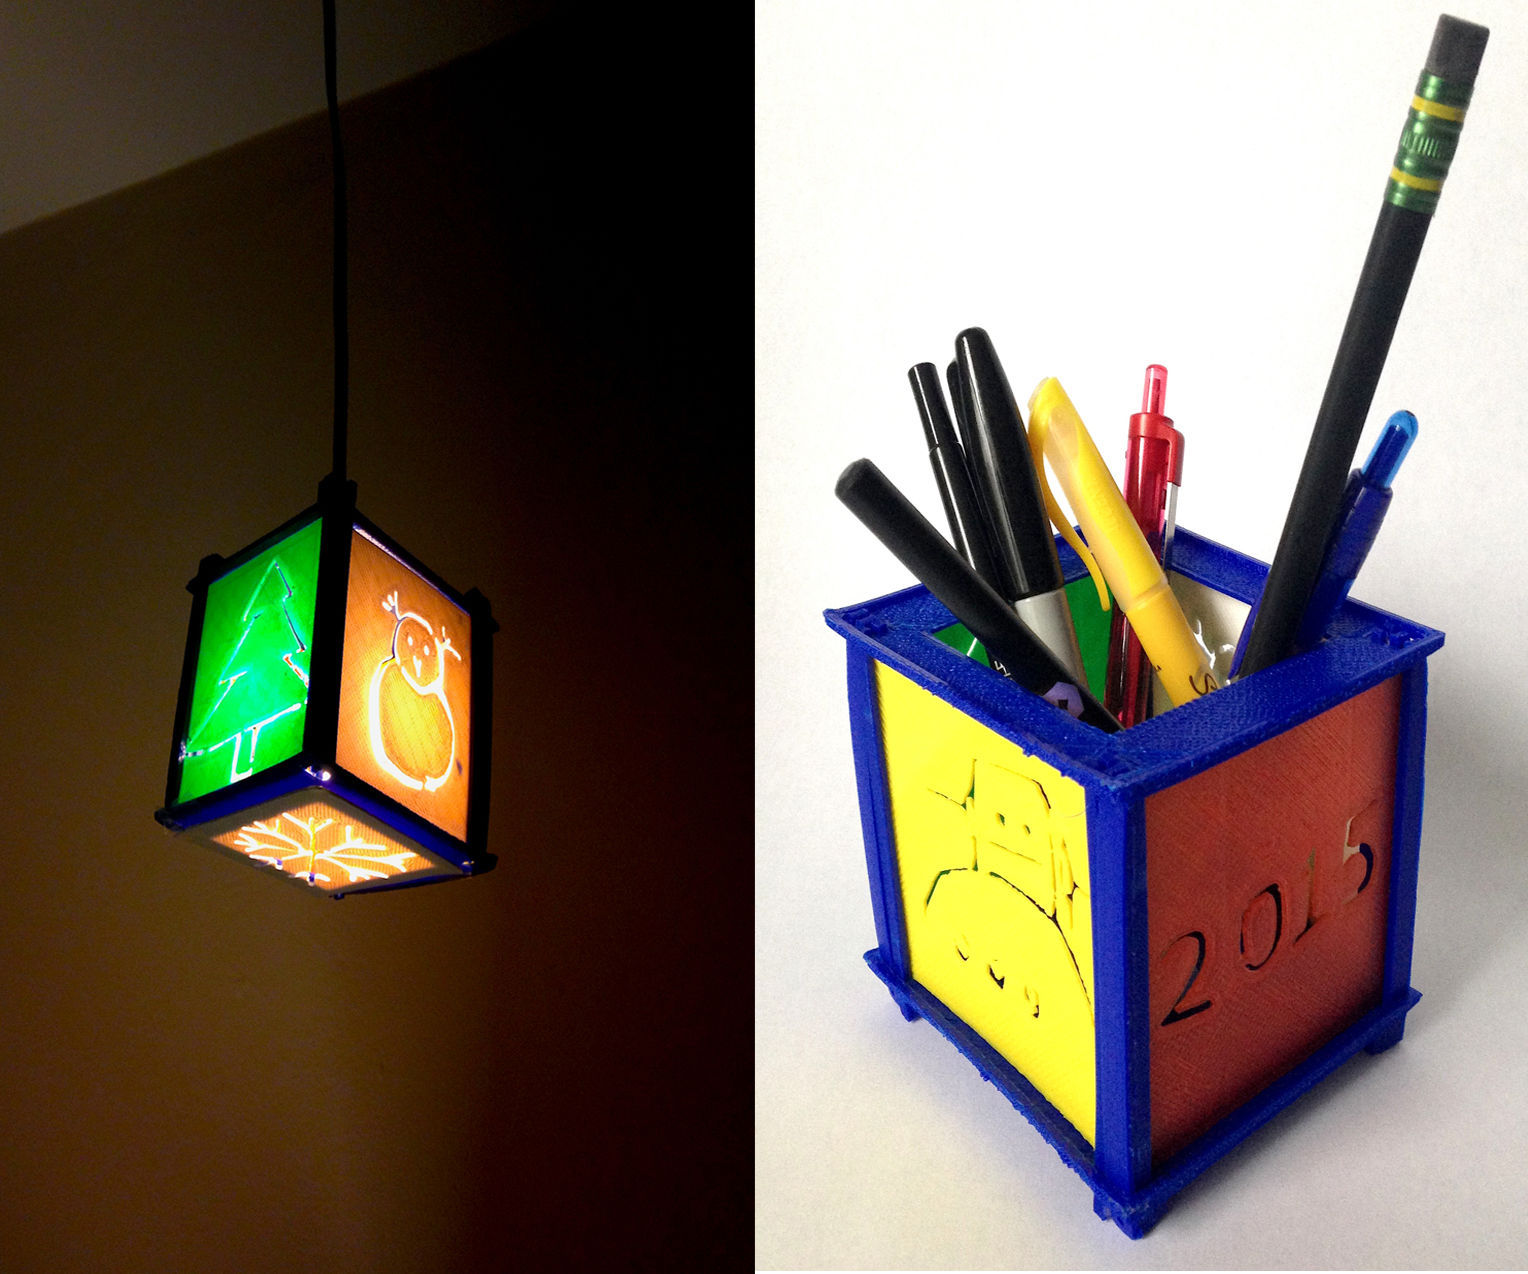 Autodesk 123D design- Create a Customizable Lamp/Pen Stand